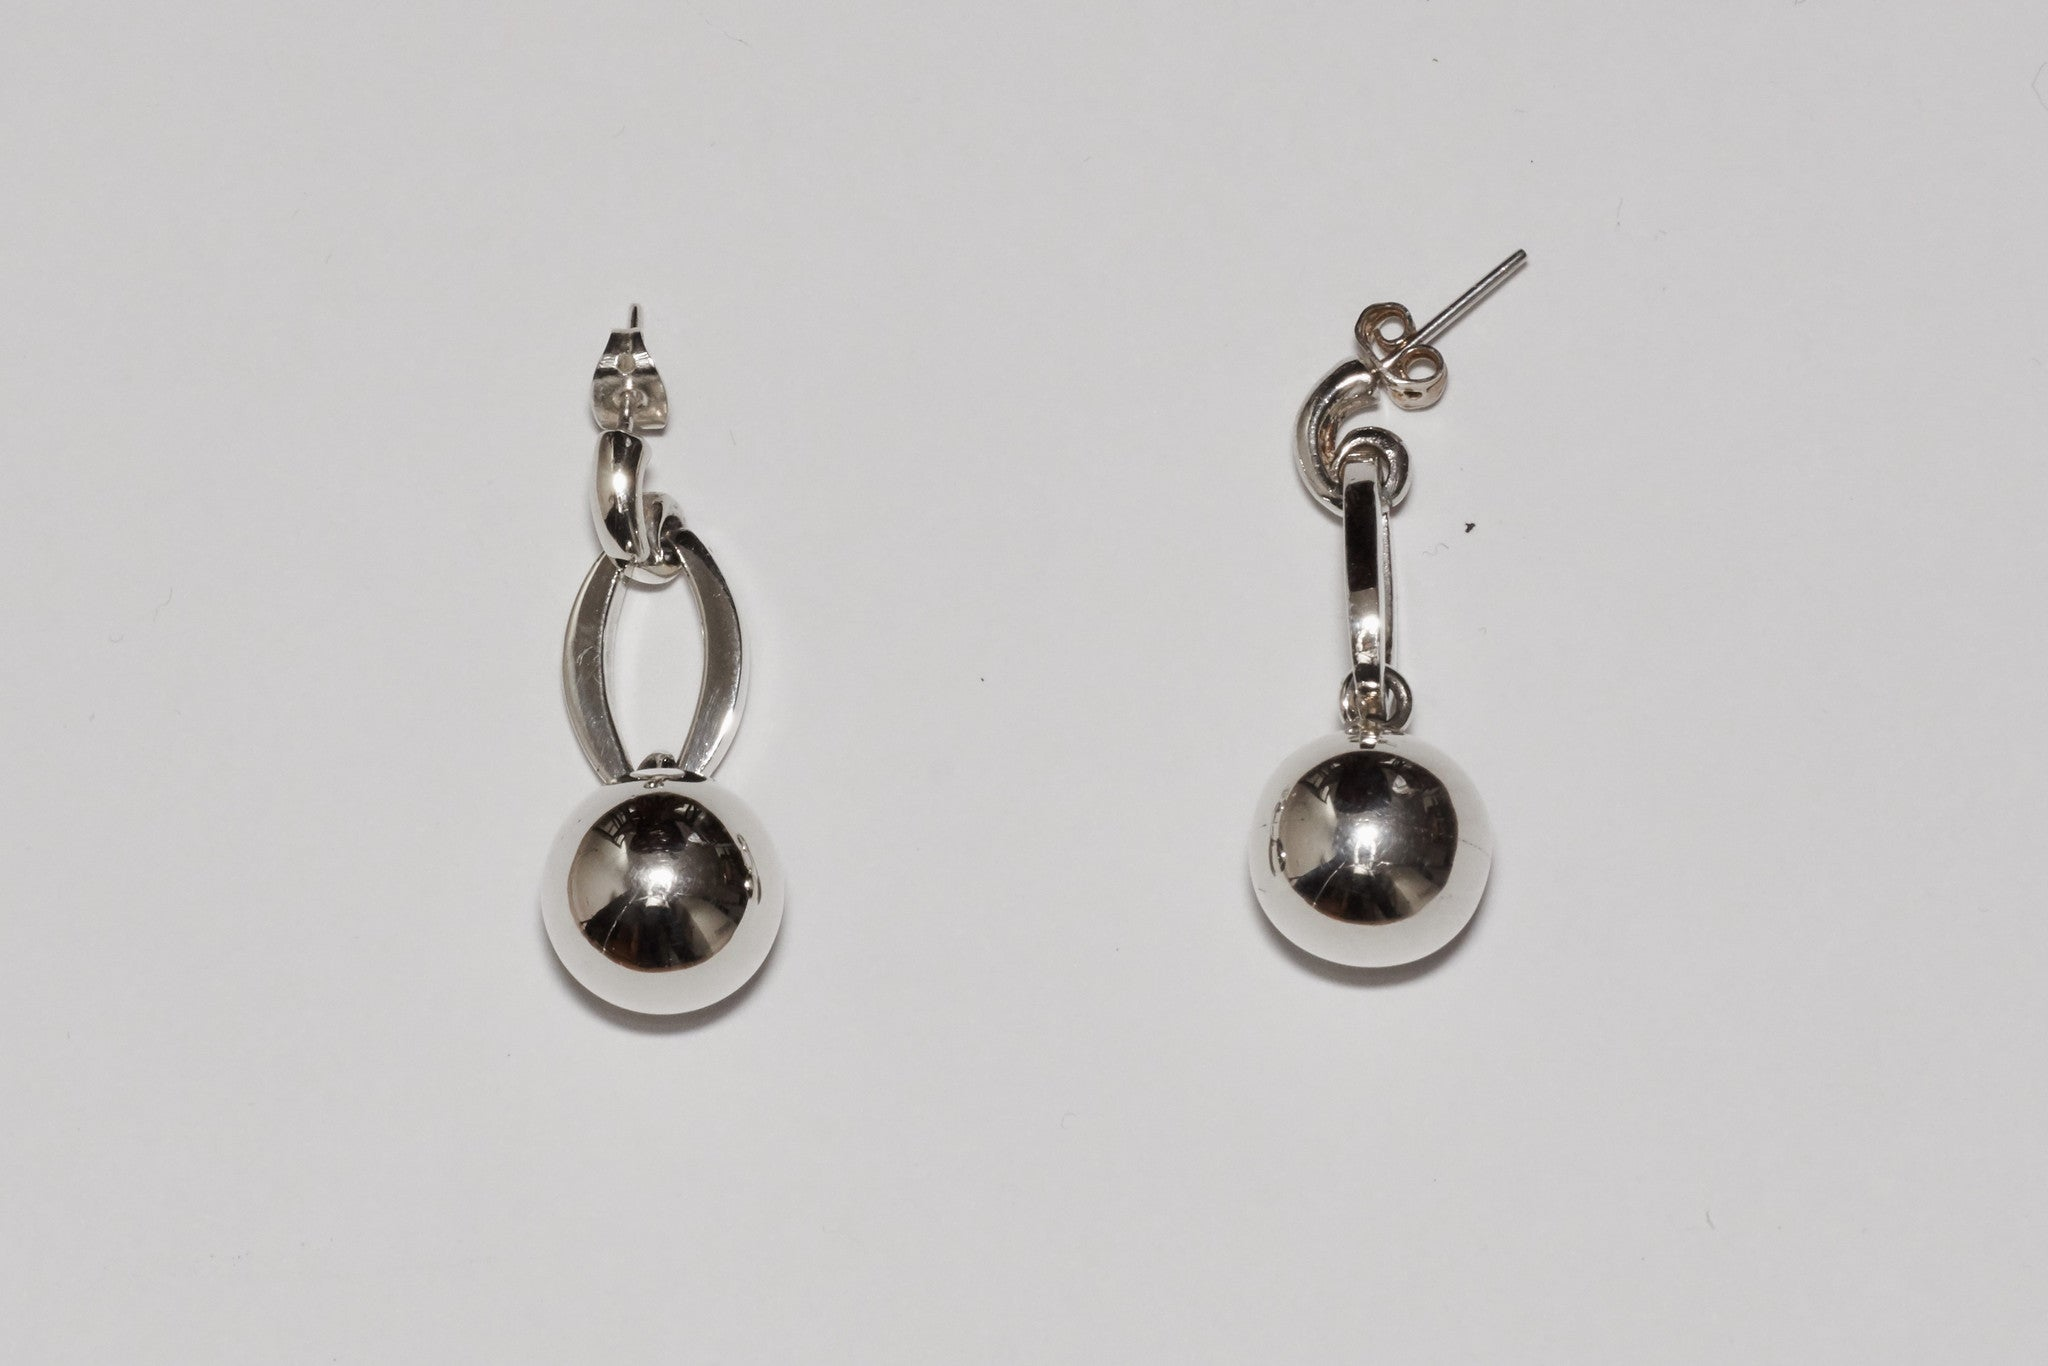 Victoria (Earrings)